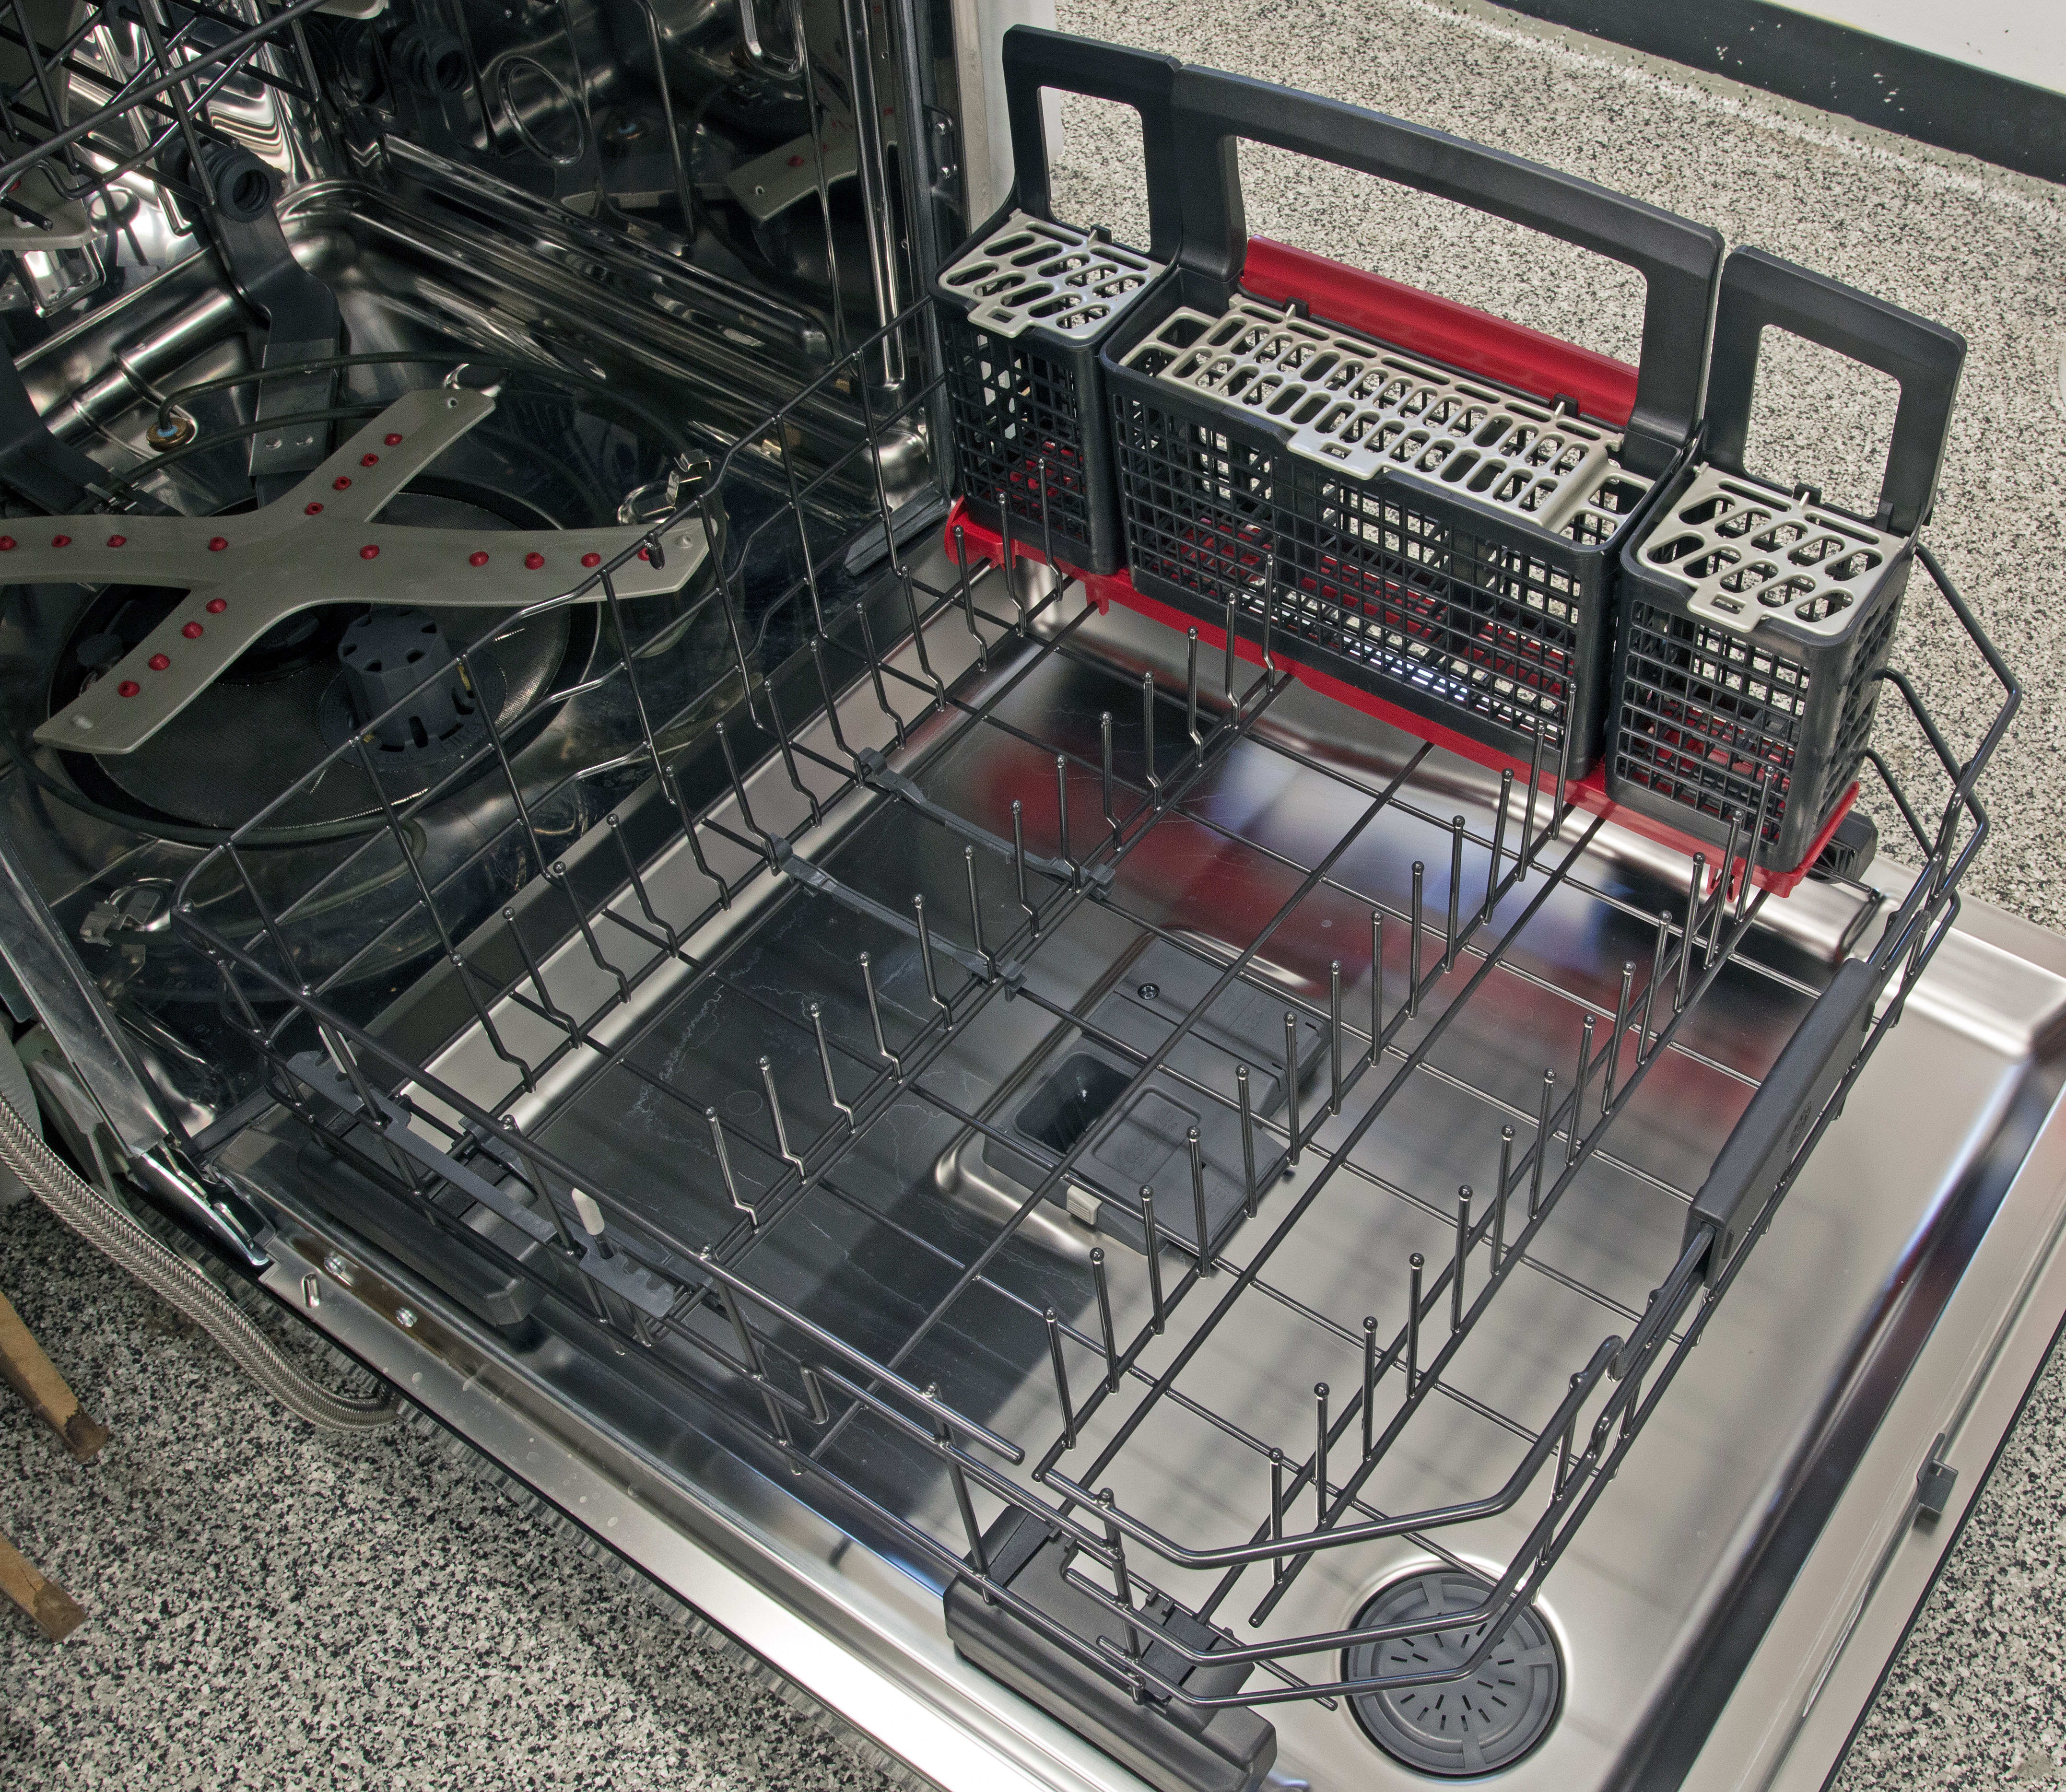 The lower rack is fairly straightforward, but offers a degree of flexibility.